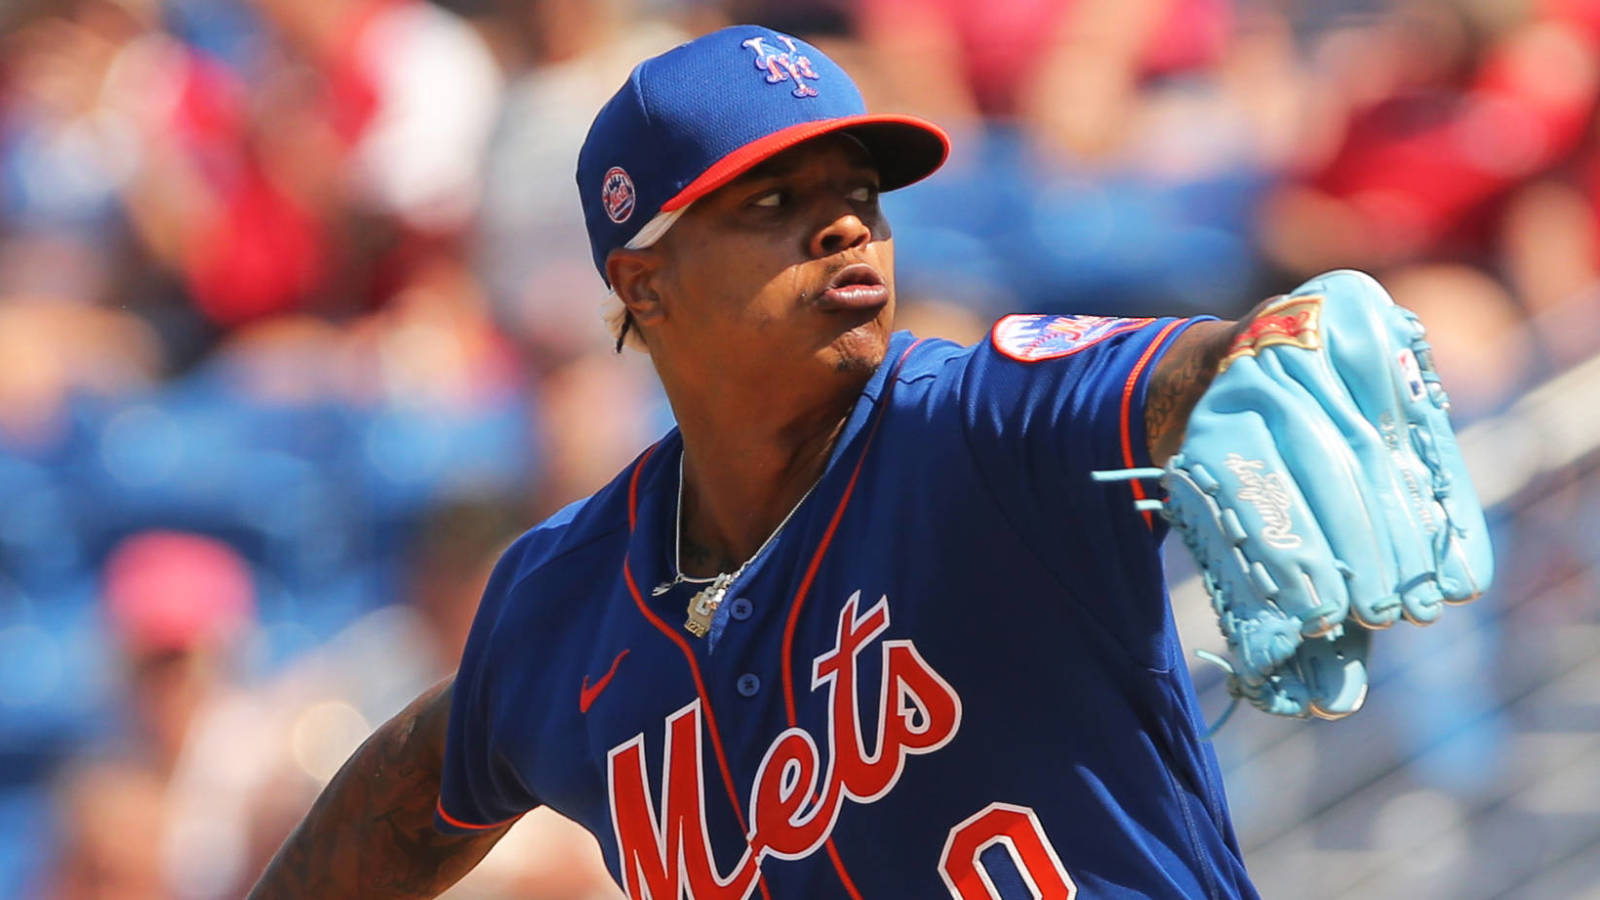 Photo of Marcus Stroman expects to be 'one of the top arms' in free agency after 2020